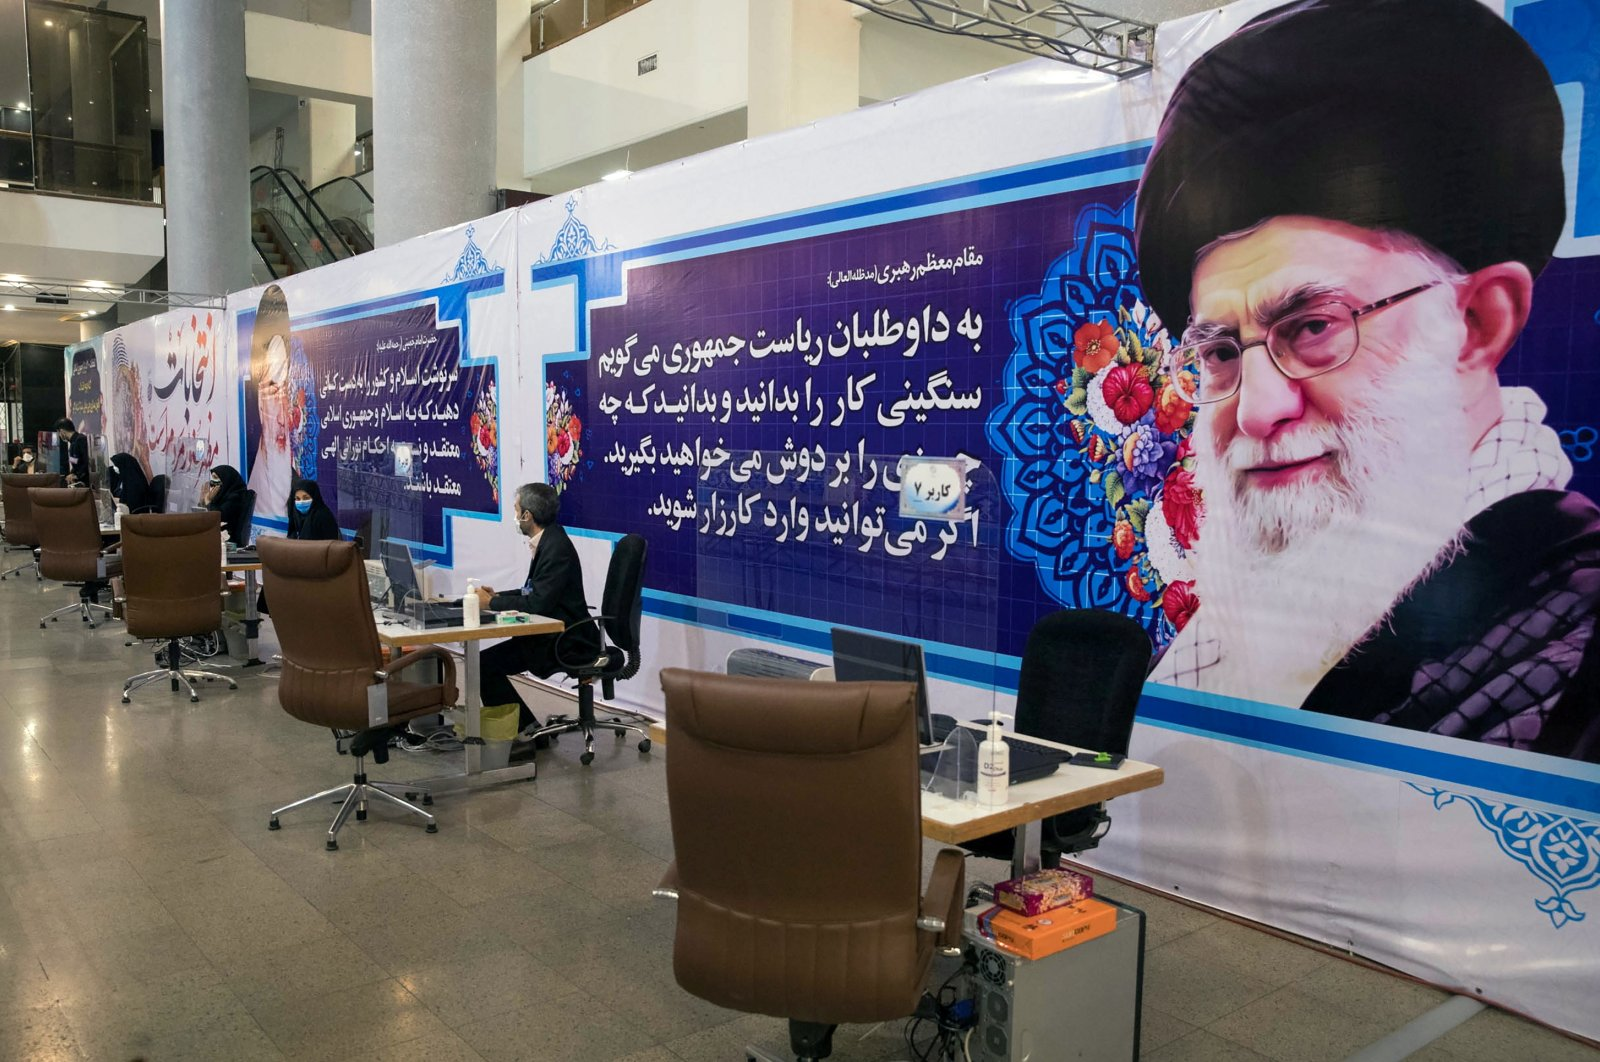 Elections headquarters staff wait to receive candidates to register for Iran's presidential election at the Interior Ministry, in Tehran, Iran, May 11, 2021. (West Asia News Agency via Reuters)